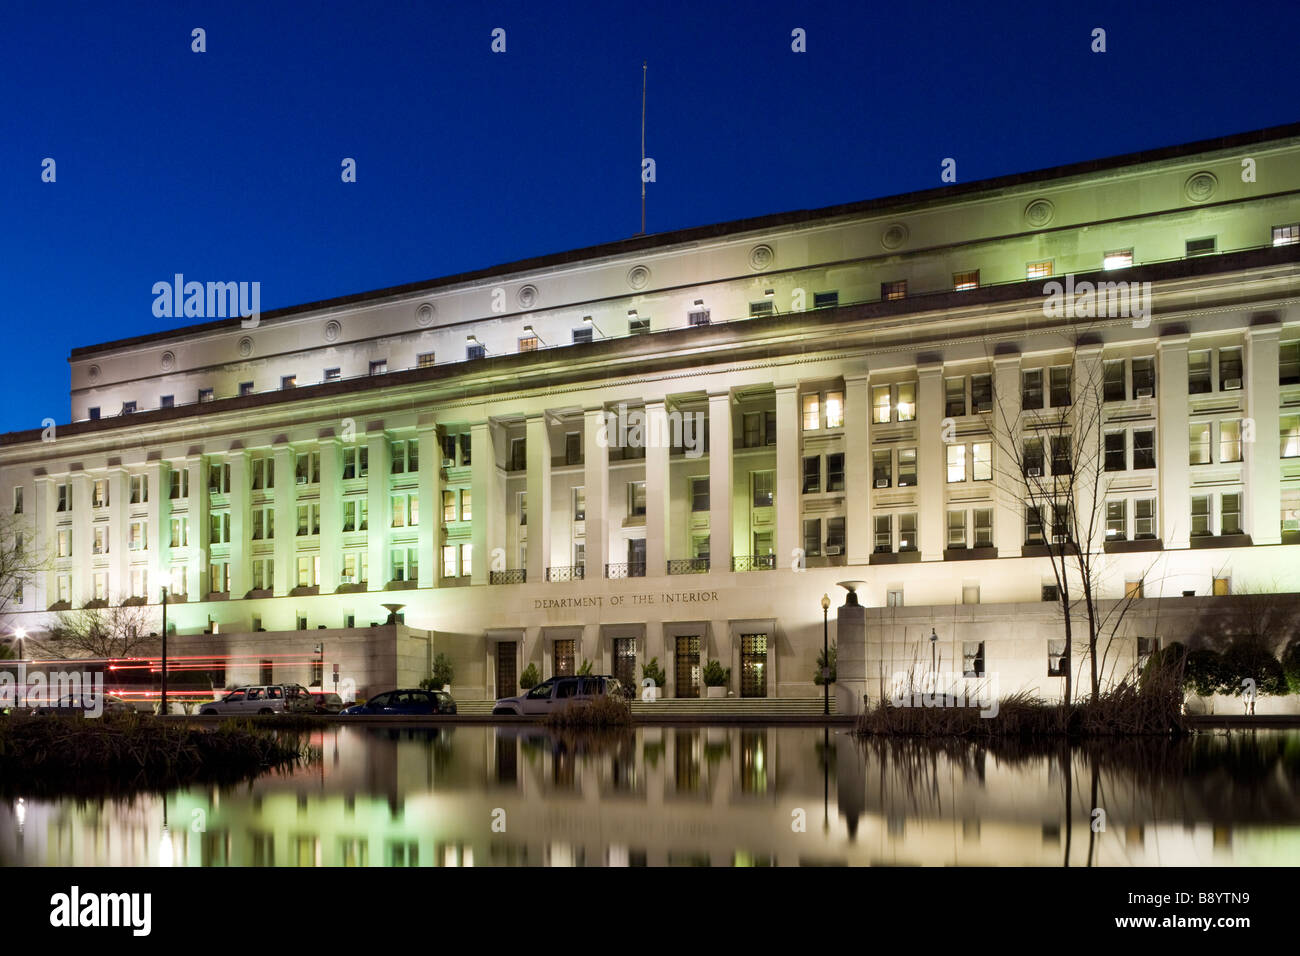 https://c7.alamy.com/comp/B8YTN9/the-united-states-department-of-the-interior-doi-headquarters-in-washington-B8YTN9.jpg